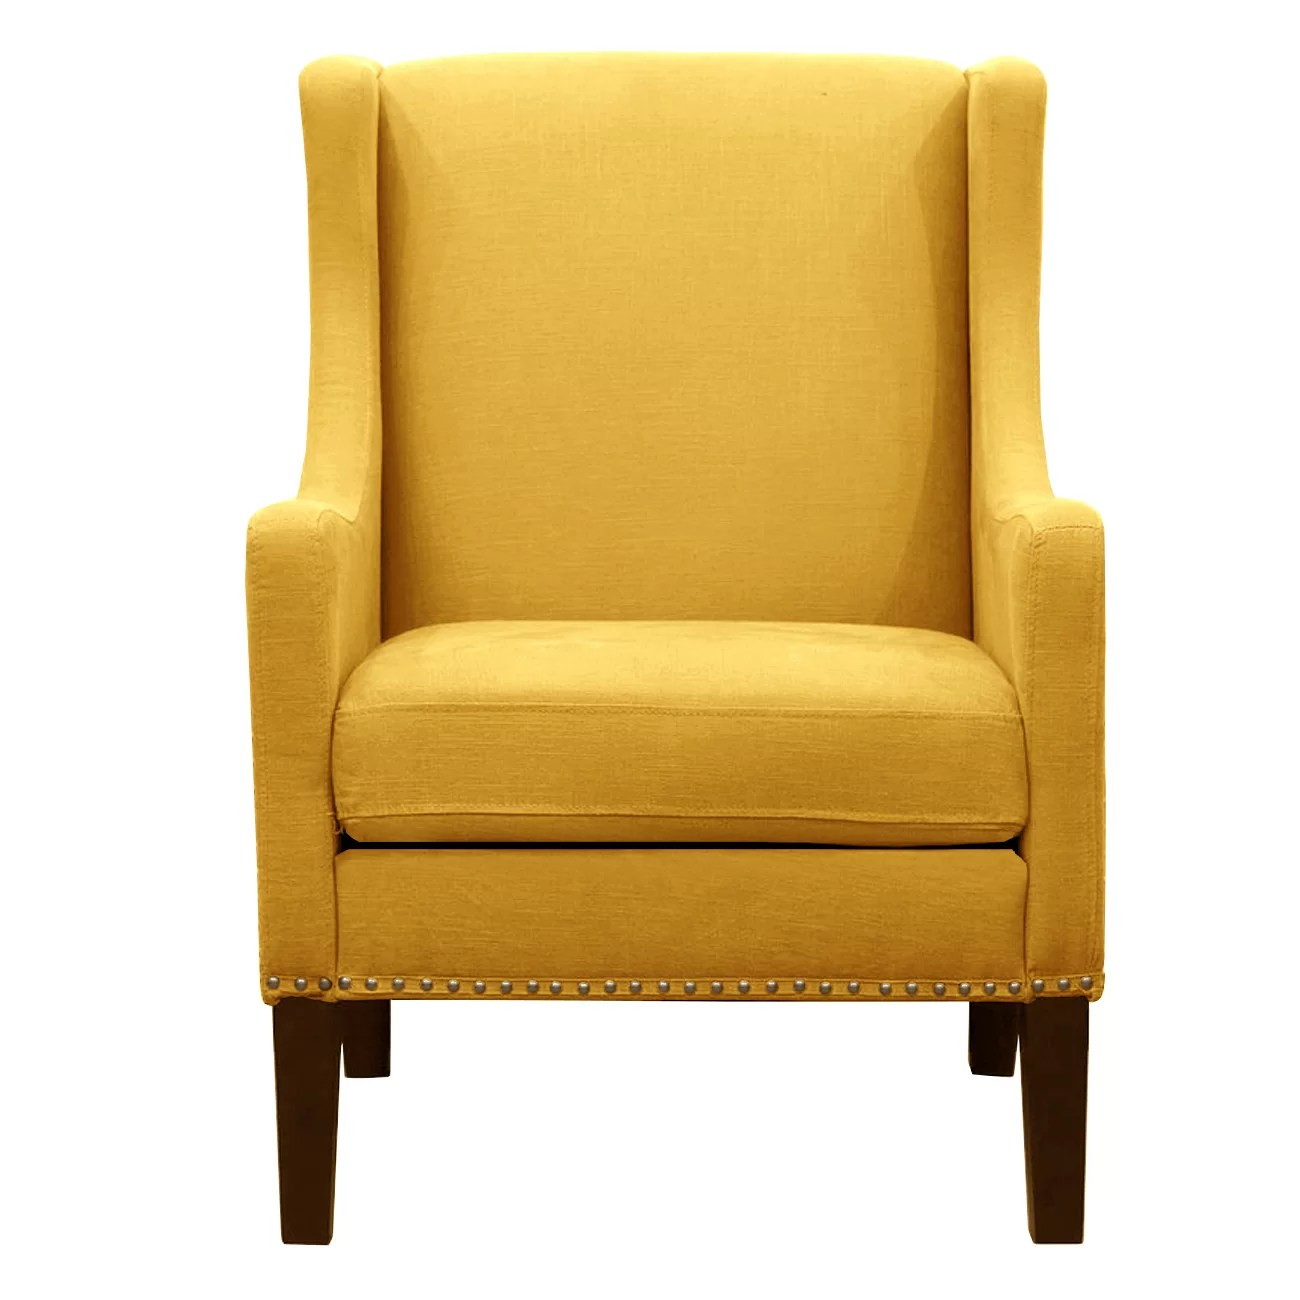 Wayfair Wingback Chair Mercer41 Wingback Chair And Reviews Wayfair